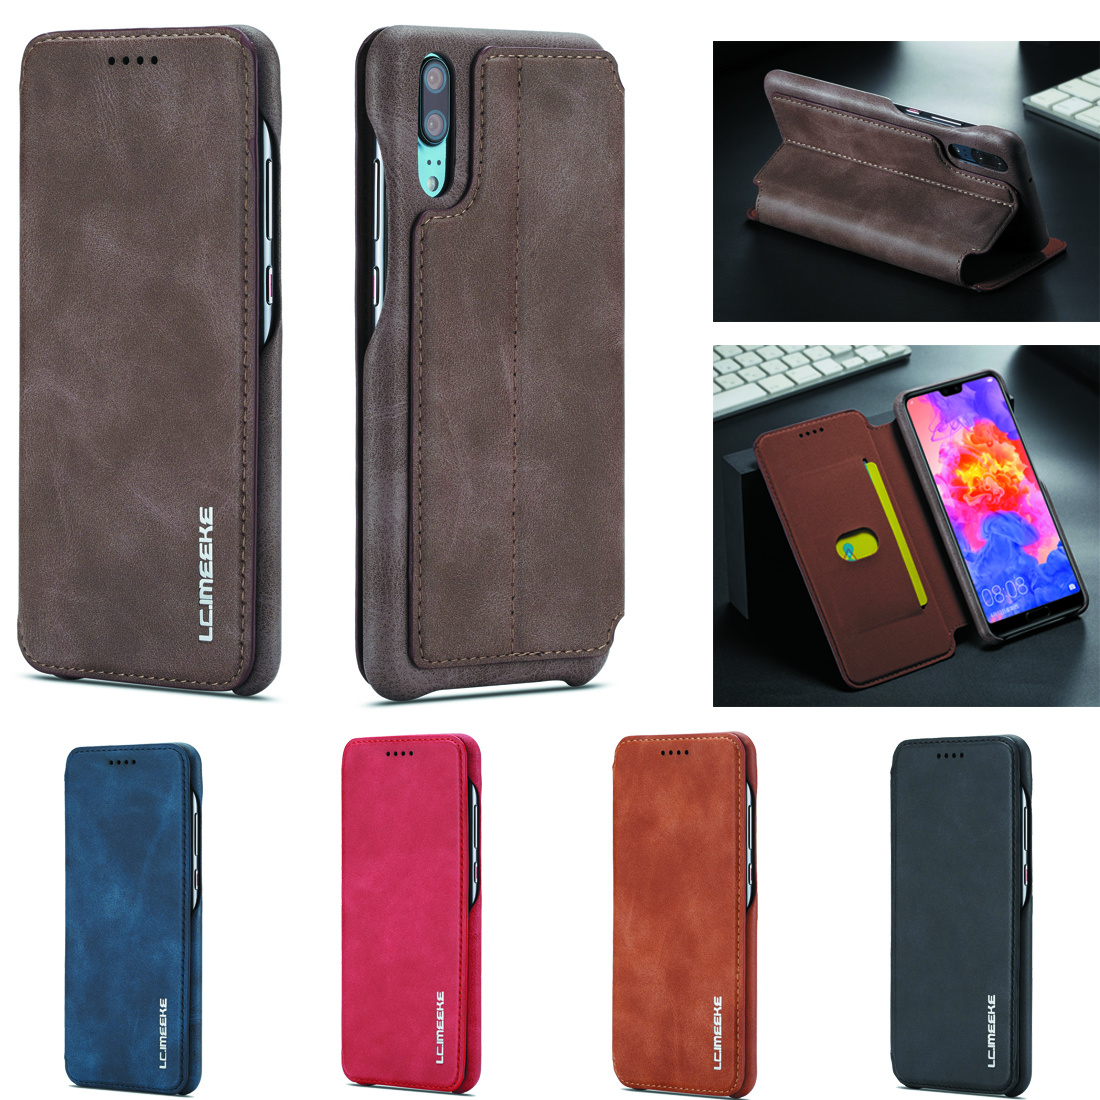 Case for Samsung Galaxy A20 A30 A70 A40 A50 Brand Book cover Logo Quality Case Luxury Thicken Leather Holder Wallet Sewing Coque